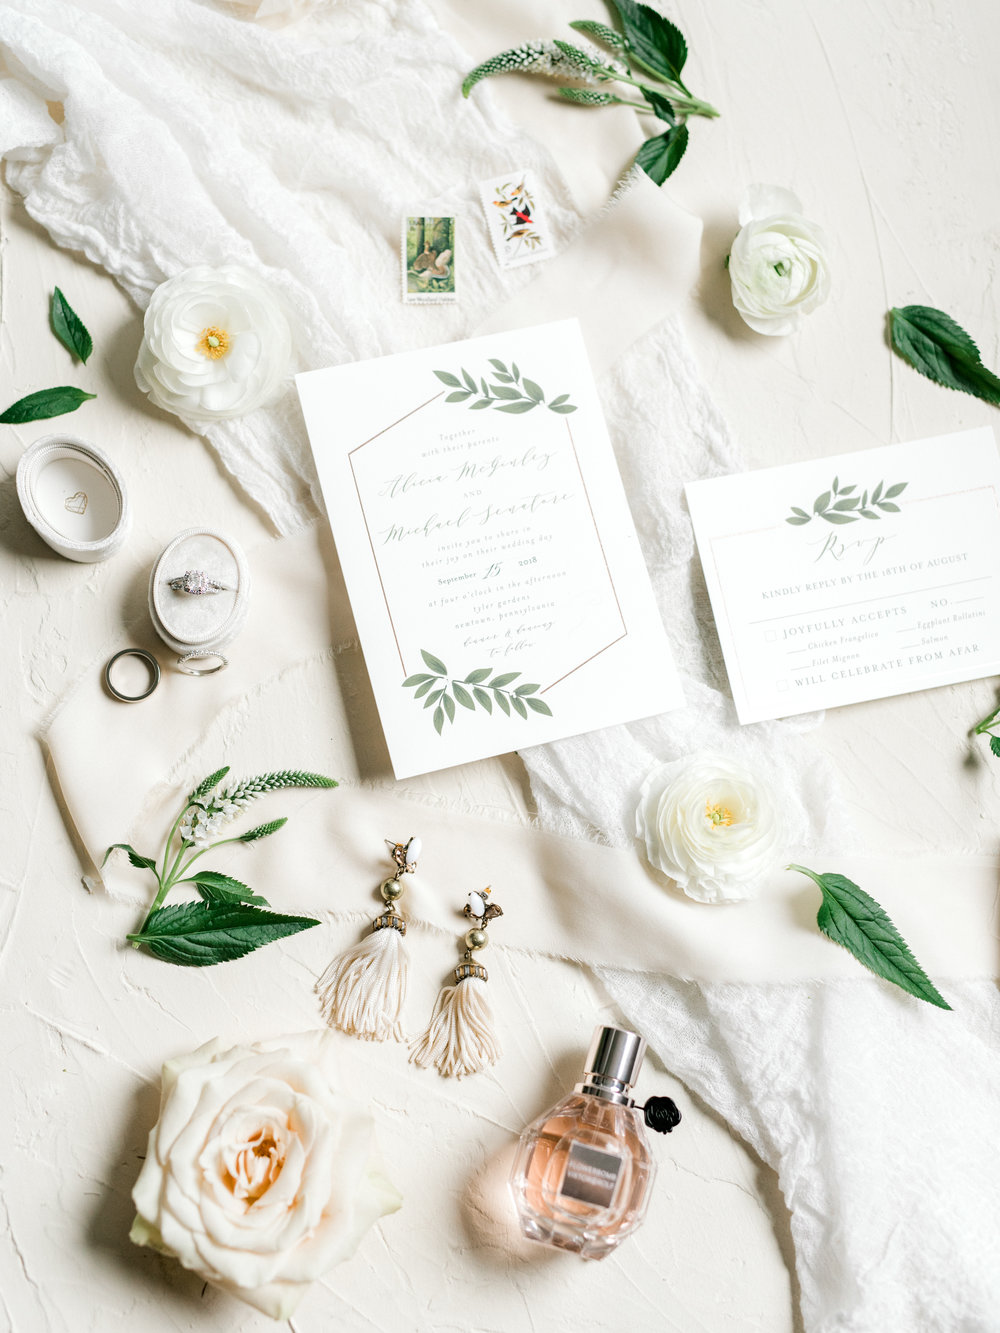 These simple and elegant details with white and green invitations made for the perfect accent to this bright boho chic Tyler Gardens wedding in Bucks County